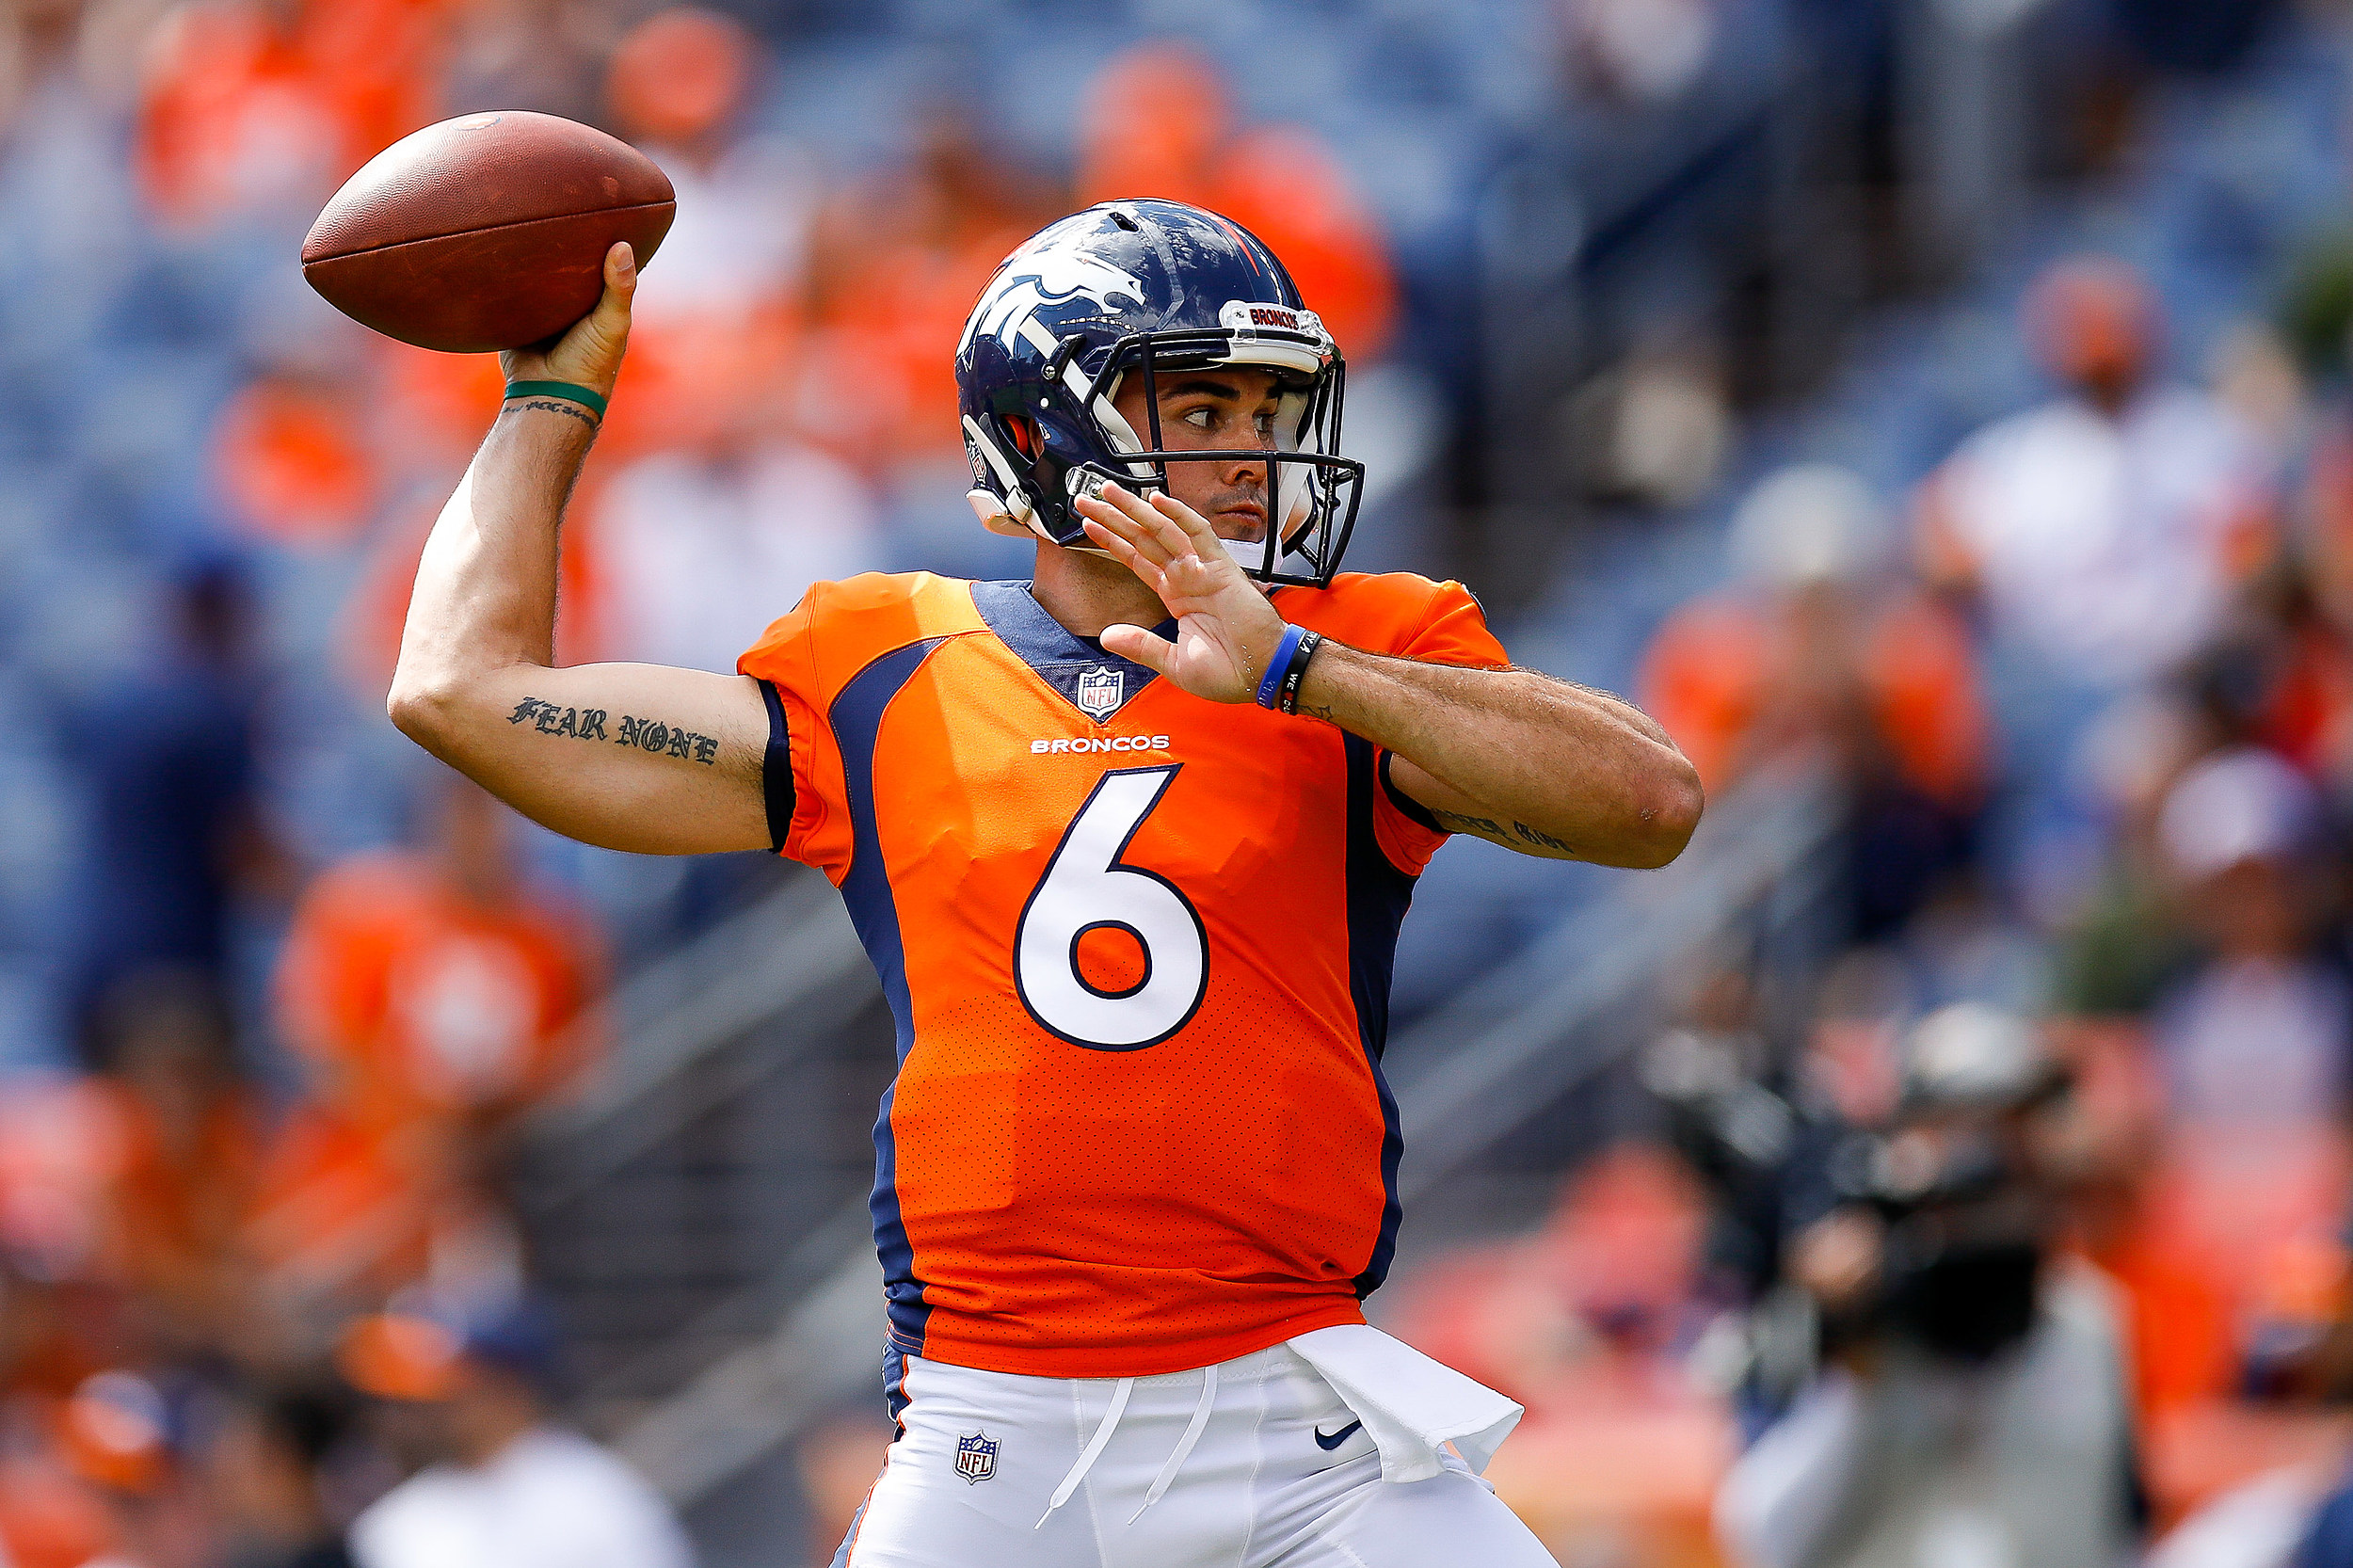 e2dfb403e Broncos Backup QB Chad Kelly Arrested in Trespassing Case